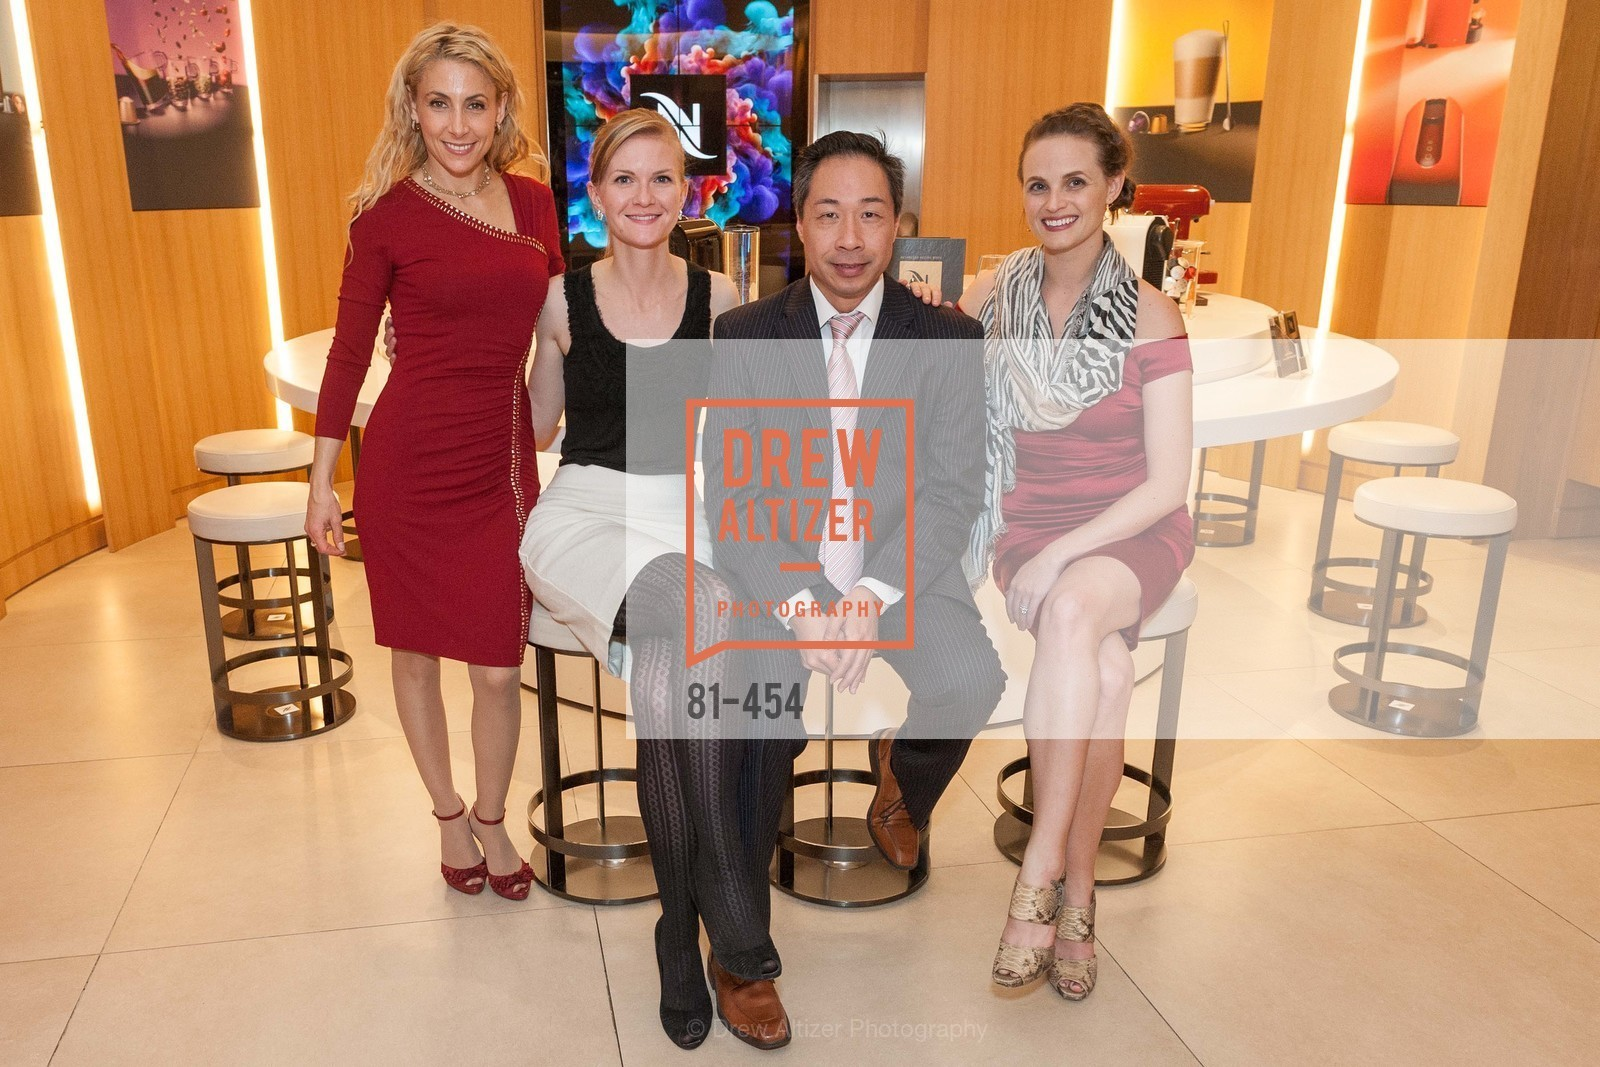 Robin Farmanfarmaian, Greer Goings, Wilson Yan, Alyson Blume, 2014 SAN FRANCISCO BALLET ENCORE! Kick-Off Party, US. Nespresso Boutique Bar, 90 Grant Avenue, January 7th, 2014,Drew Altizer, Drew Altizer Photography, full-service agency, private events, San Francisco photographer, photographer california